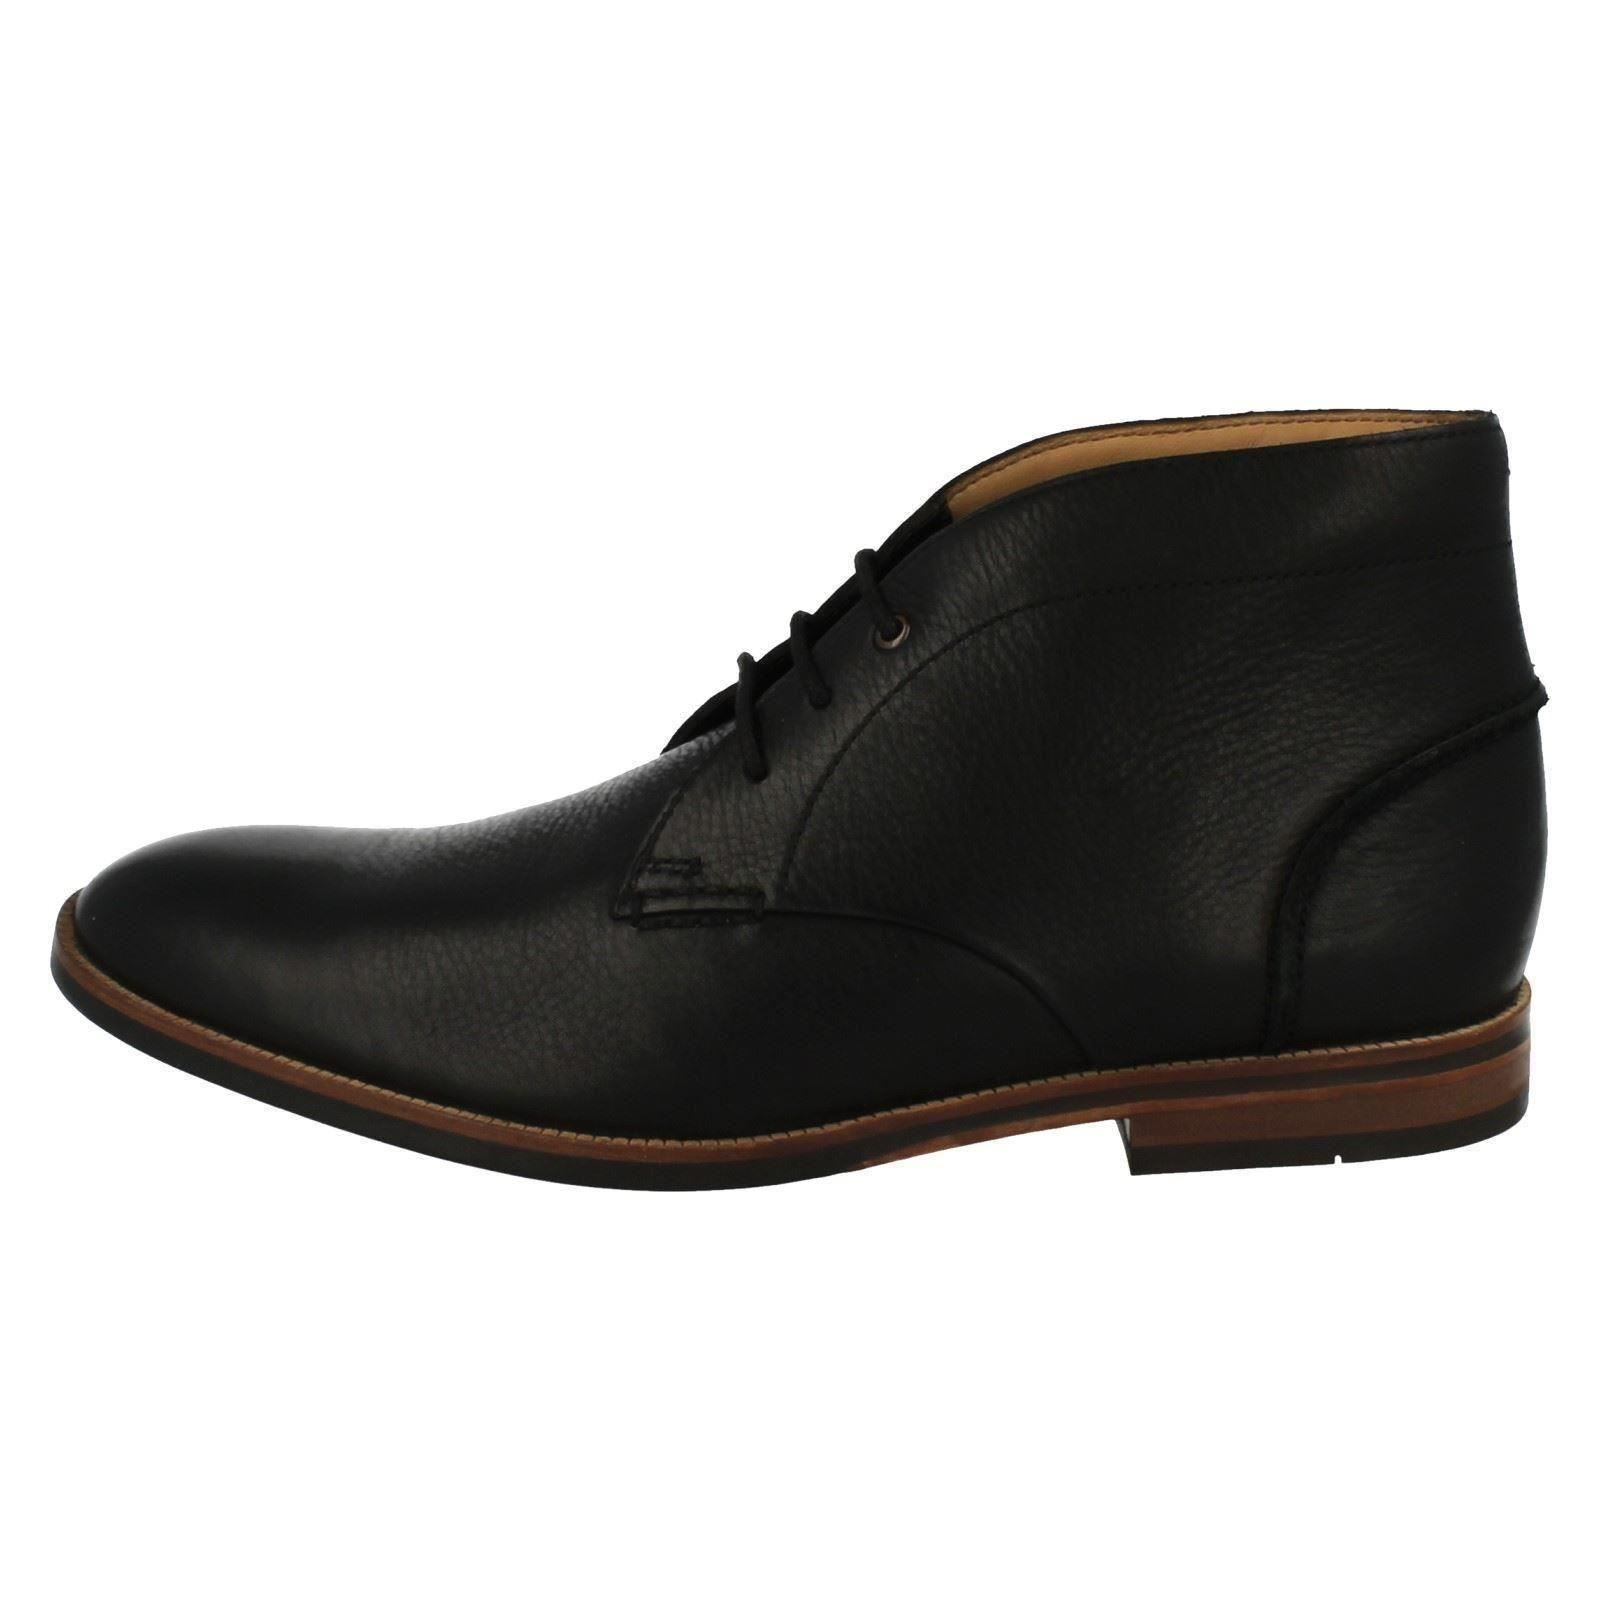 Men's Clarks Smart Lace Broyd Up Ankle Boots Label - Broyd Lace Mid abd6e0